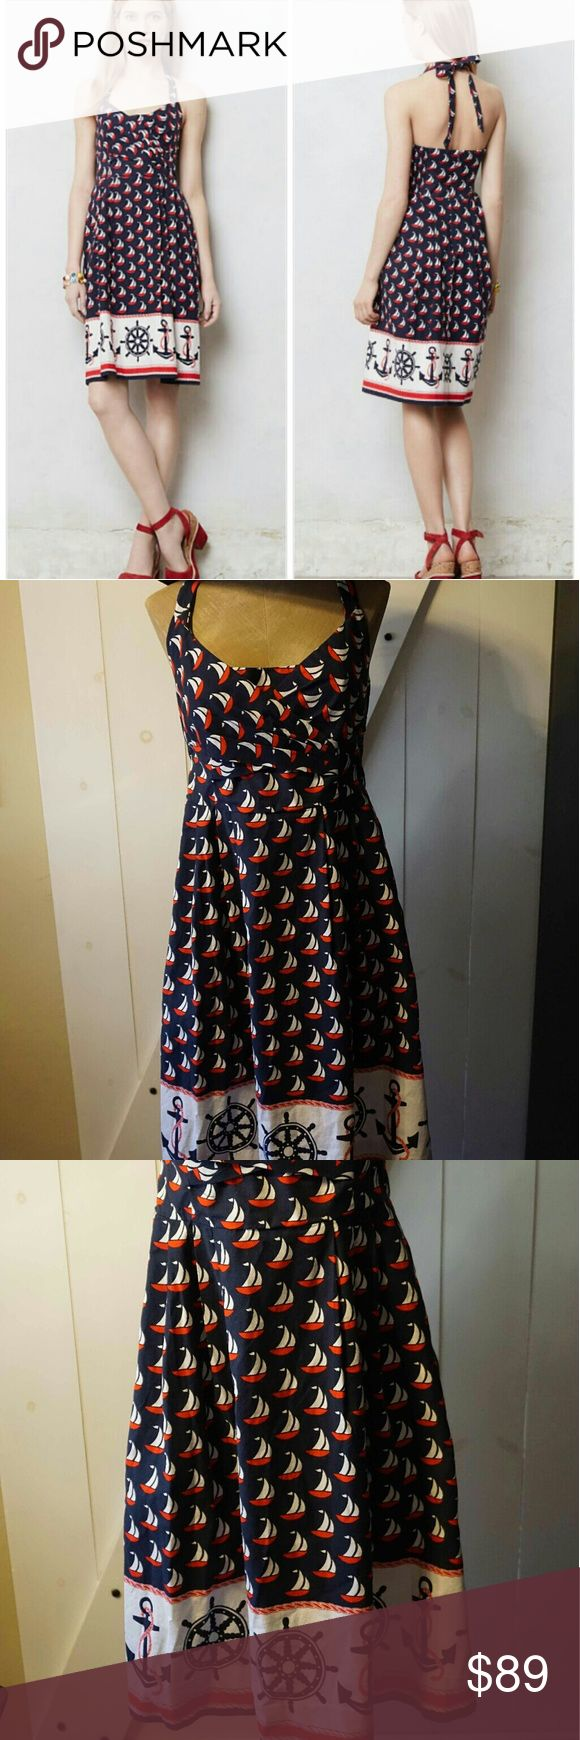 Anthropologie Windward Halter Dress Sold Out! Love this dress by 9-H15 Postamark. Adorned with schooners and anchors, this nautical dress is the quintesccential beach piece of even better for a boat day! Side pockets and back zip, cotton machine wash. In perfect used condition. This retro rockabilly style is everything! Anthropologie Dresses Midi